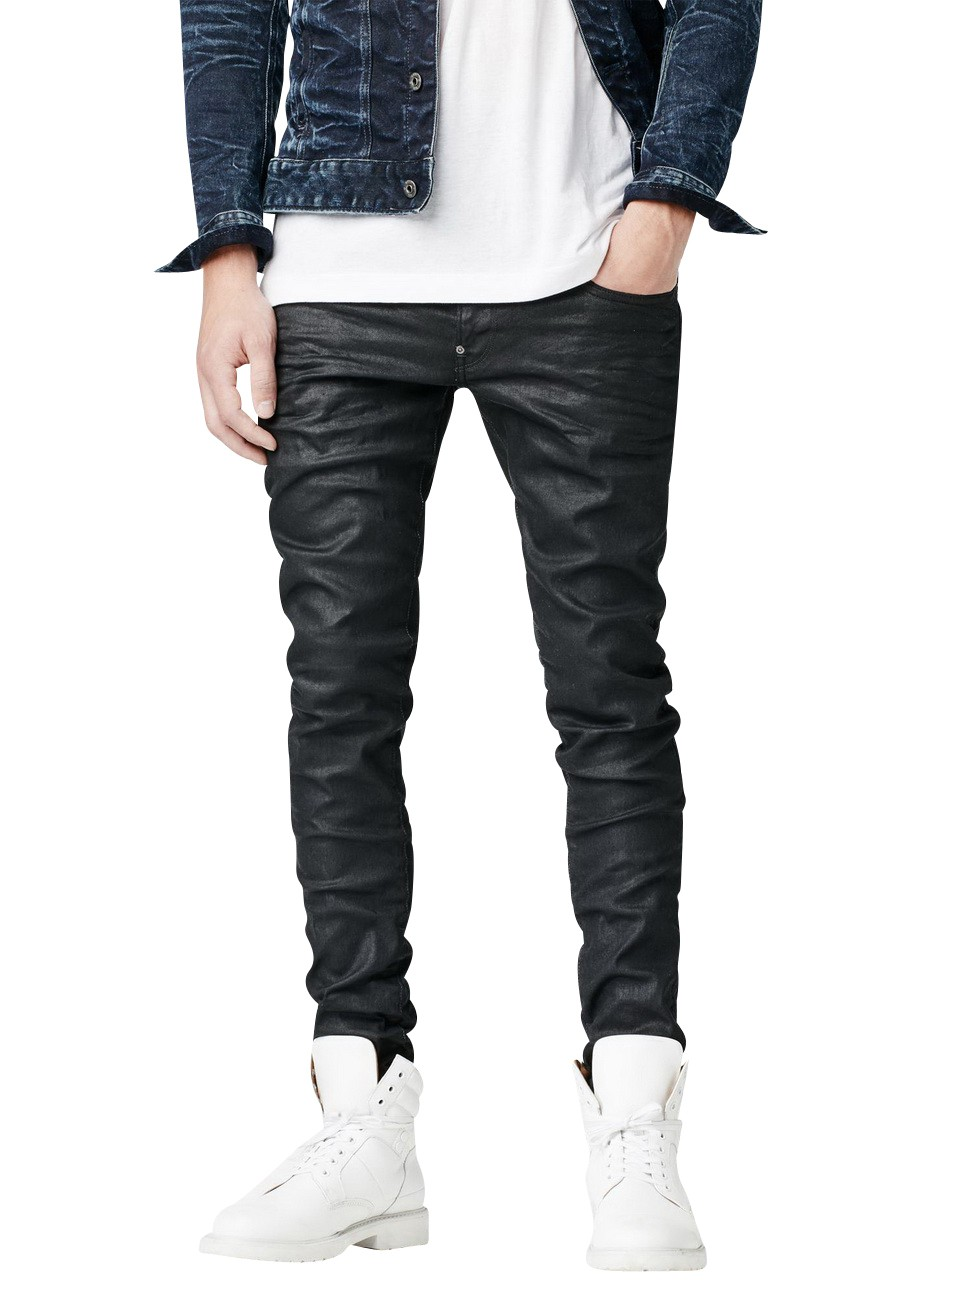 G-STAR-JEANS-UOMO-revend-SUPER-SLIM-FIT-3d-DARK-aged